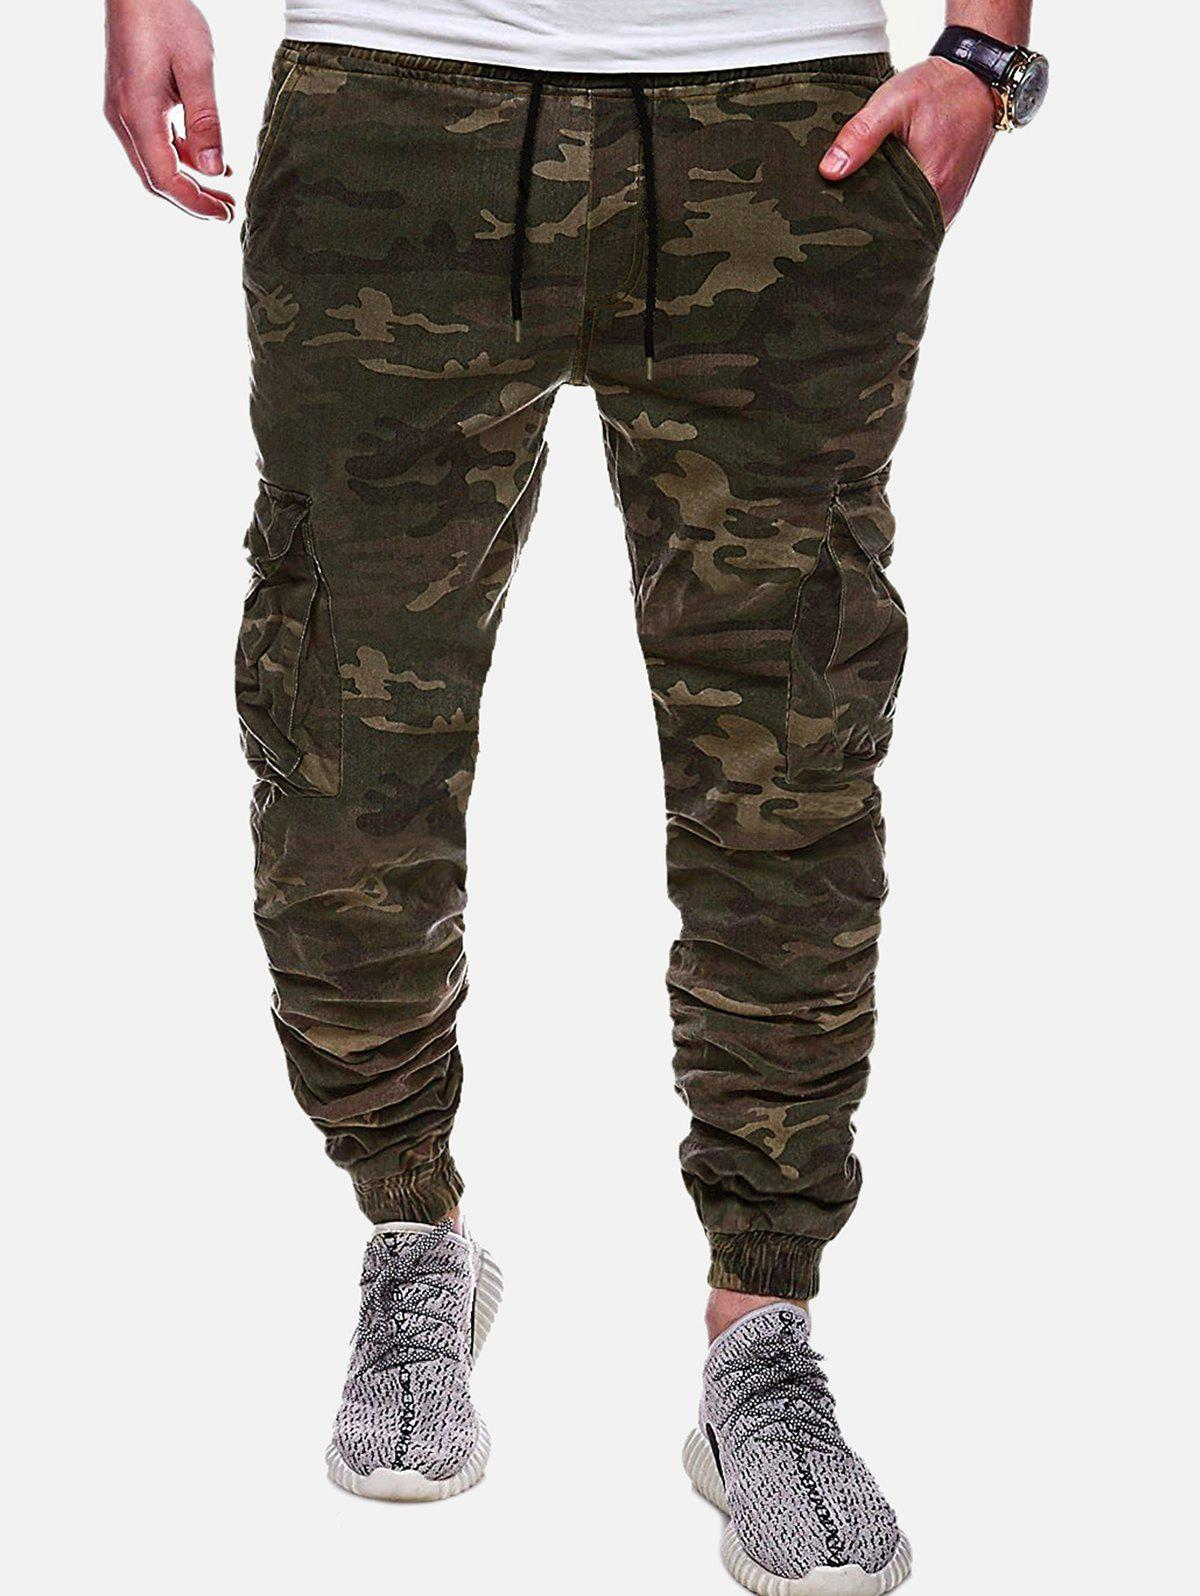 Casual Camouflage Printed Drawstring Jogger Pants, Acu camouflage